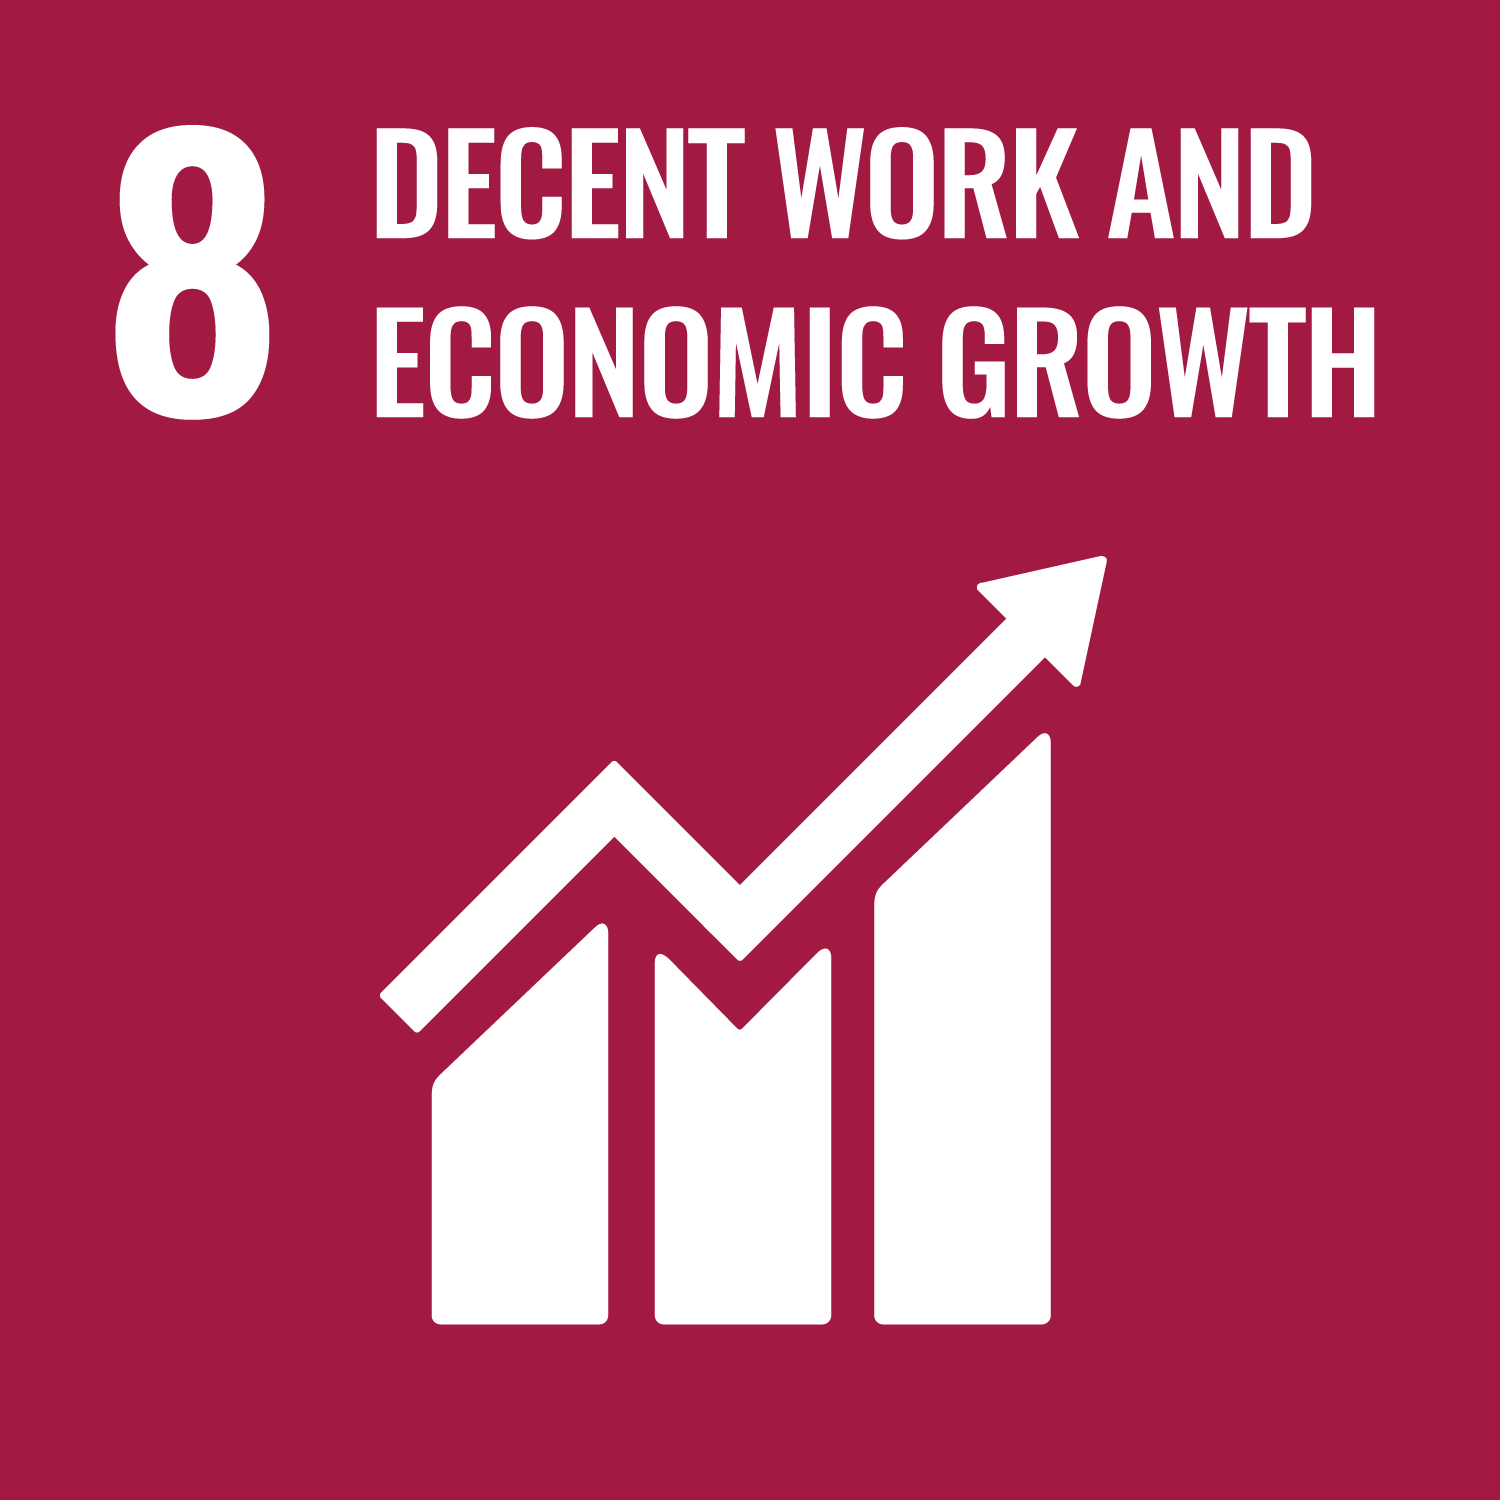 SDG8-Decent work and economic growth